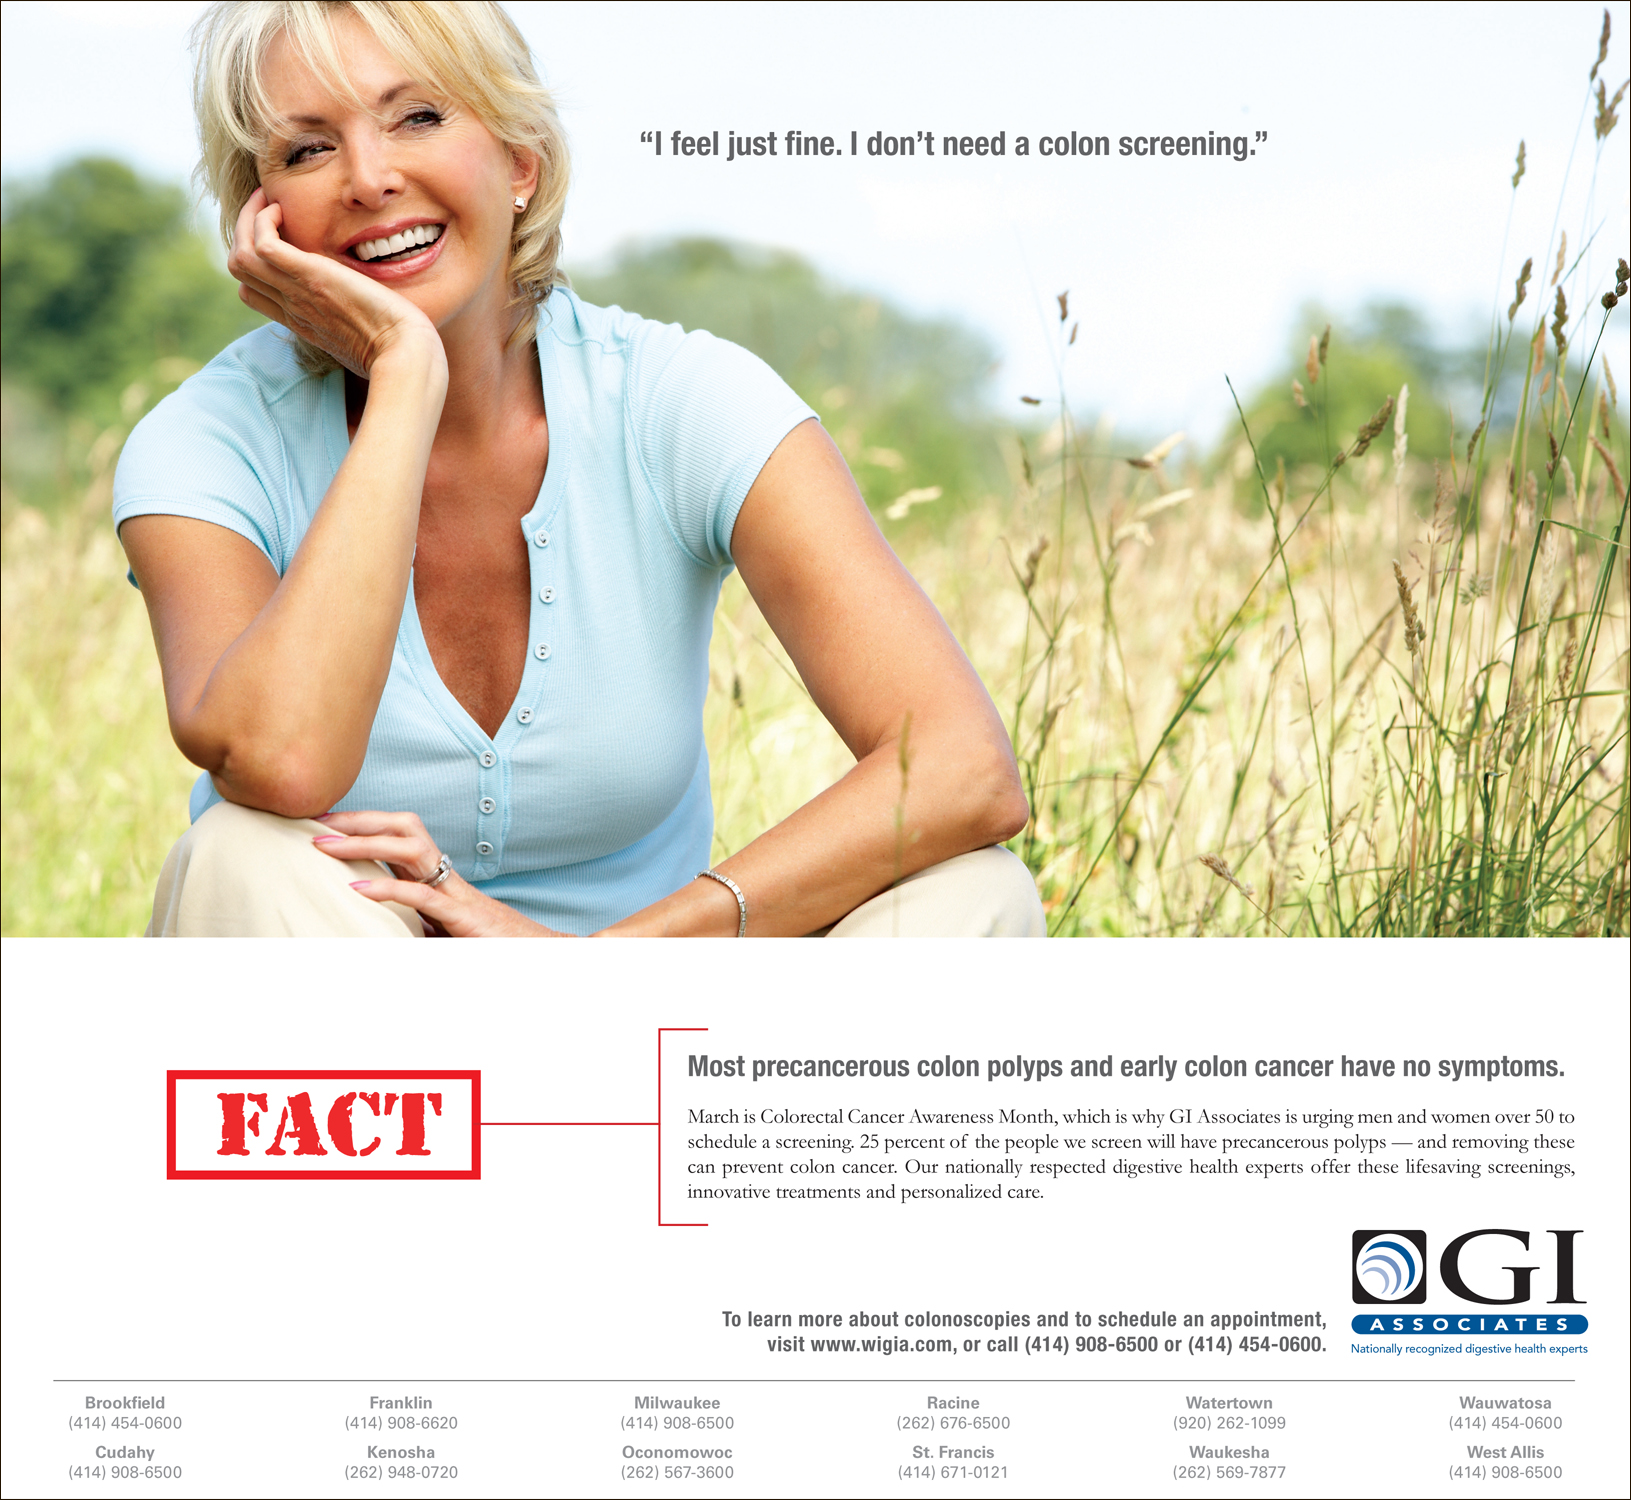 GI ASSOCIATES  Ad campaign on the truths on colorectal screenings for men and women.